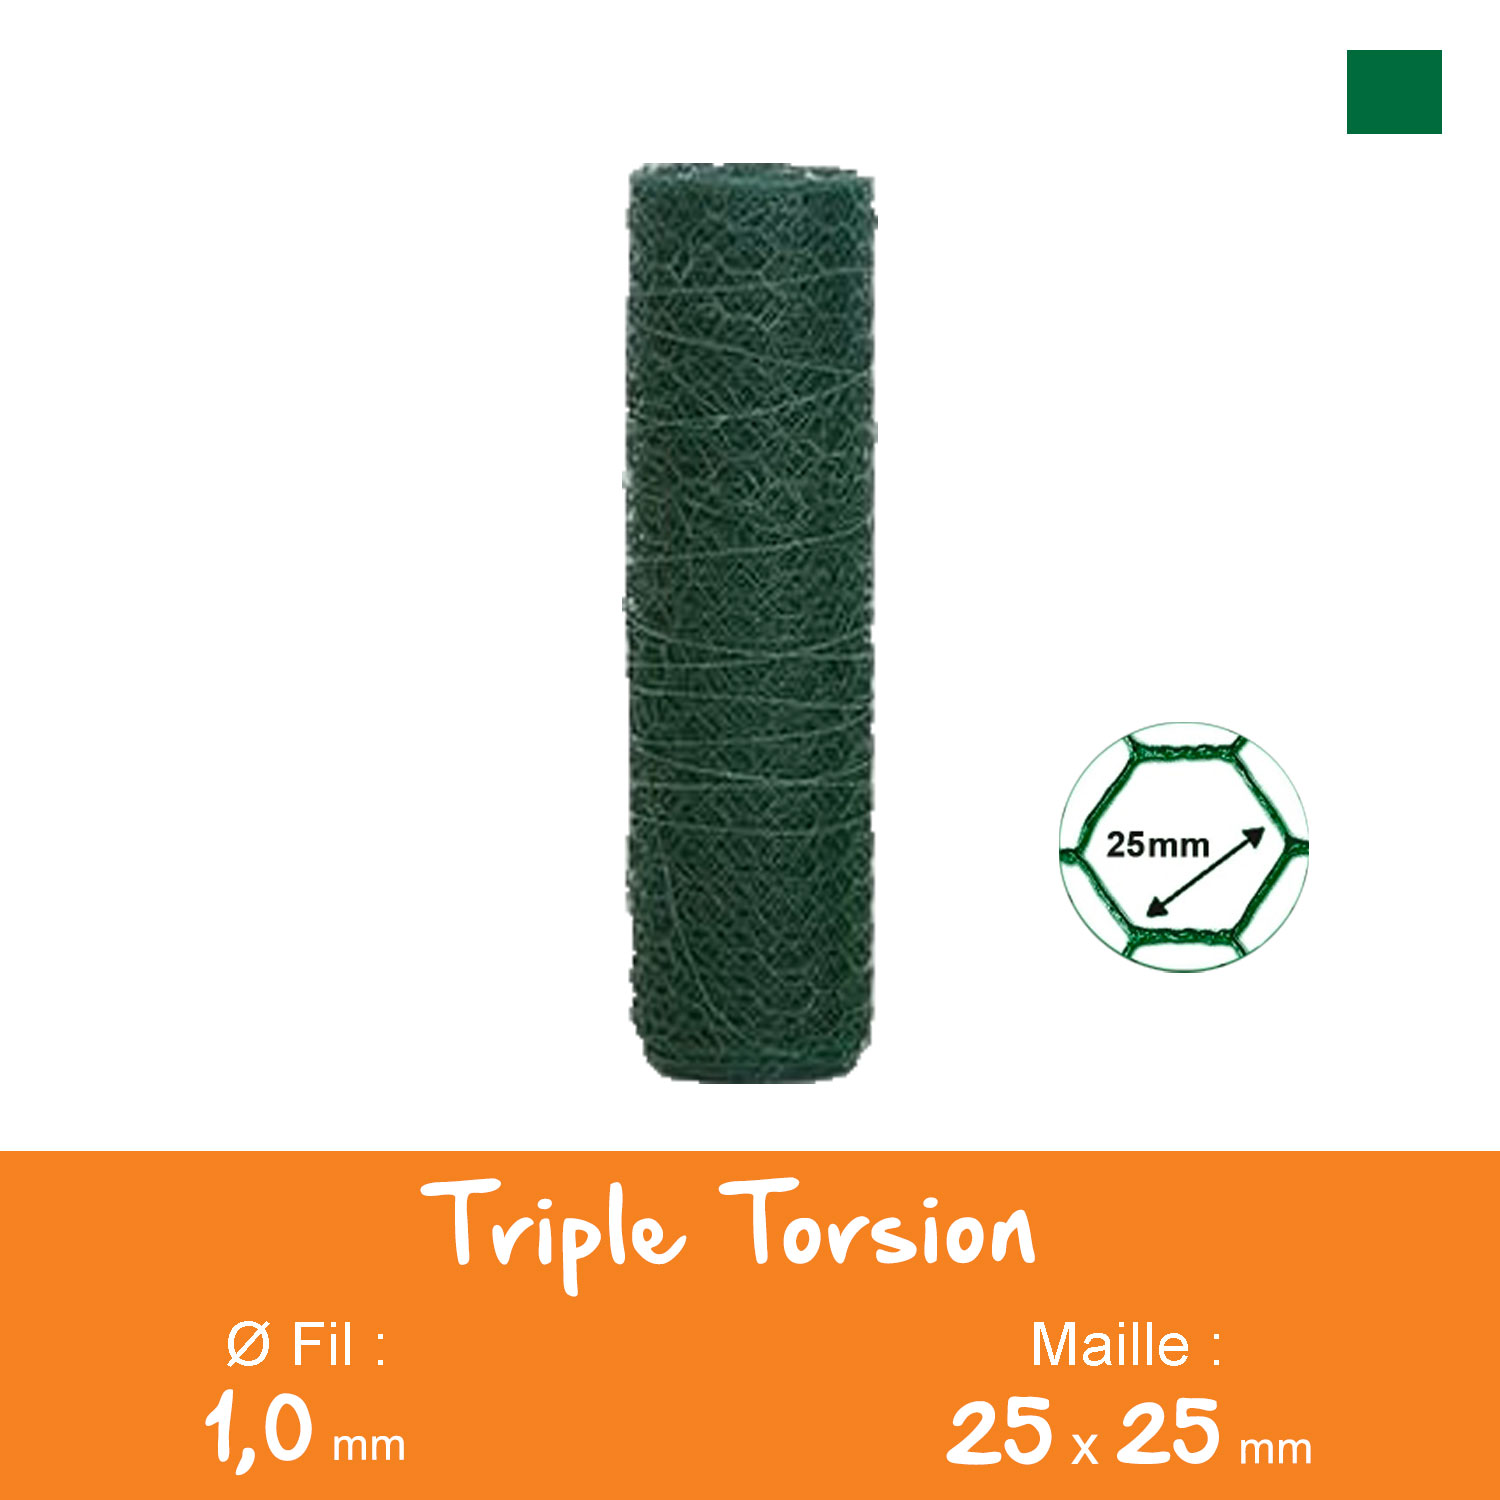 Triple Torsion Plastifié Maille 25mm Ø1,0mm Ht.0m50 Lg.10ml